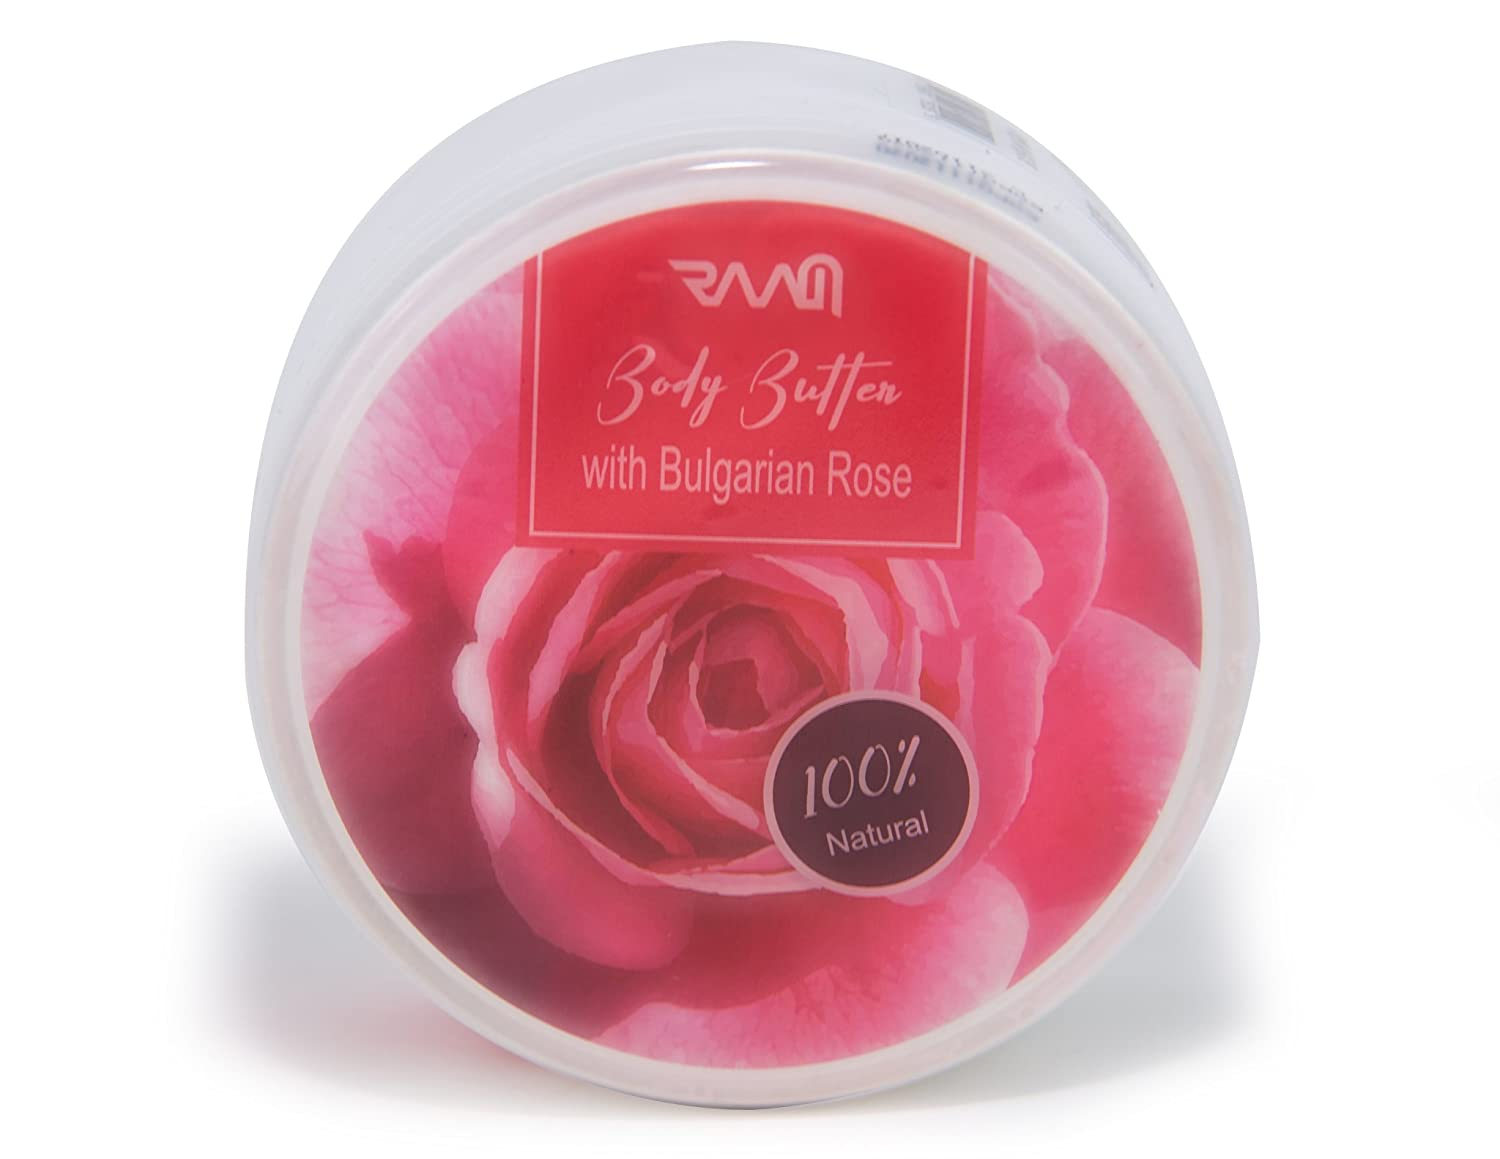 RAAM Body Butter with Bulgarian Rose - Lab Tested and Certified 100% Natural Product (250 ml)